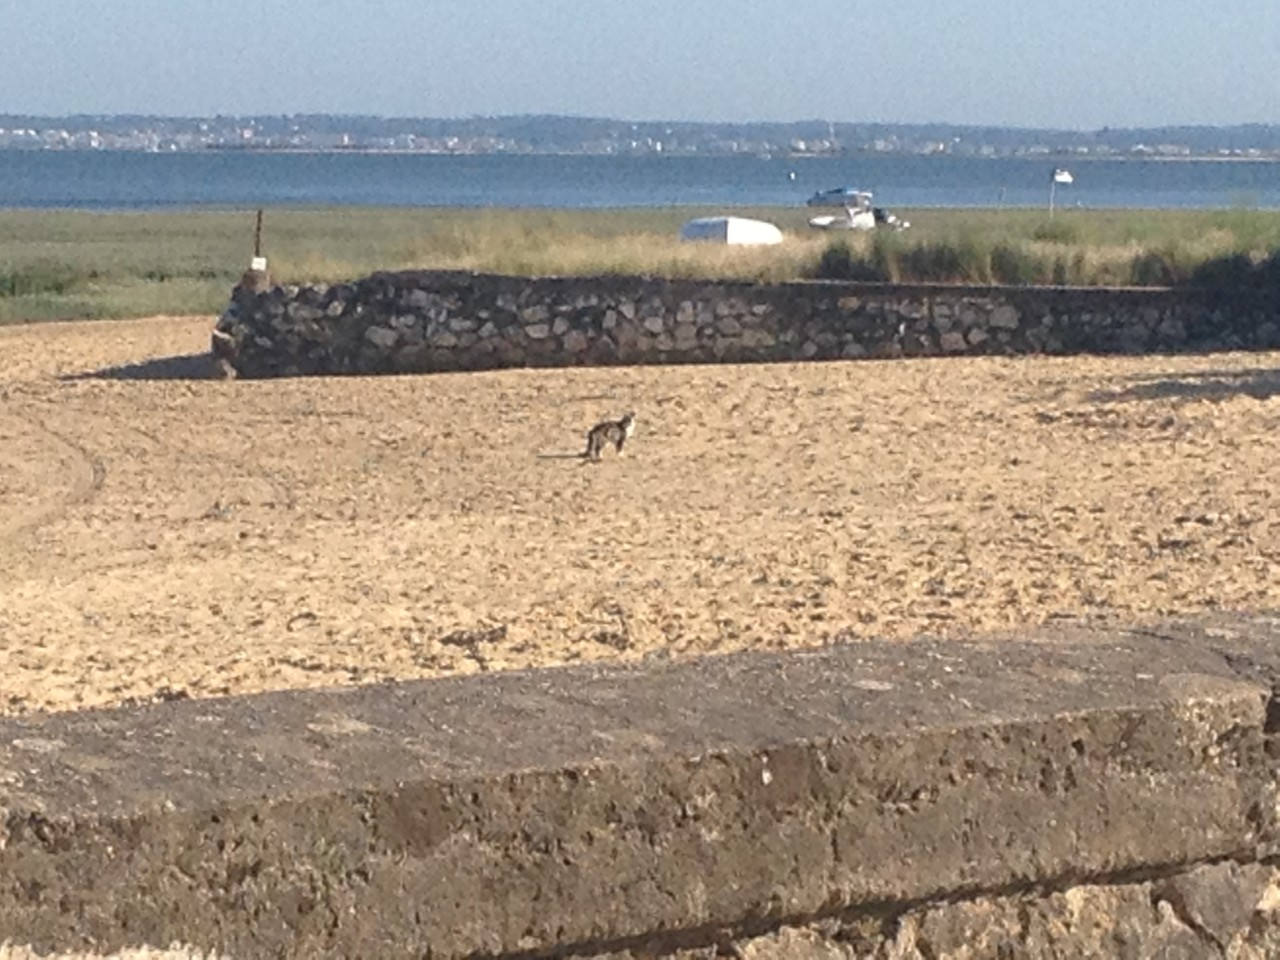 to begin, here is a cat on the beach